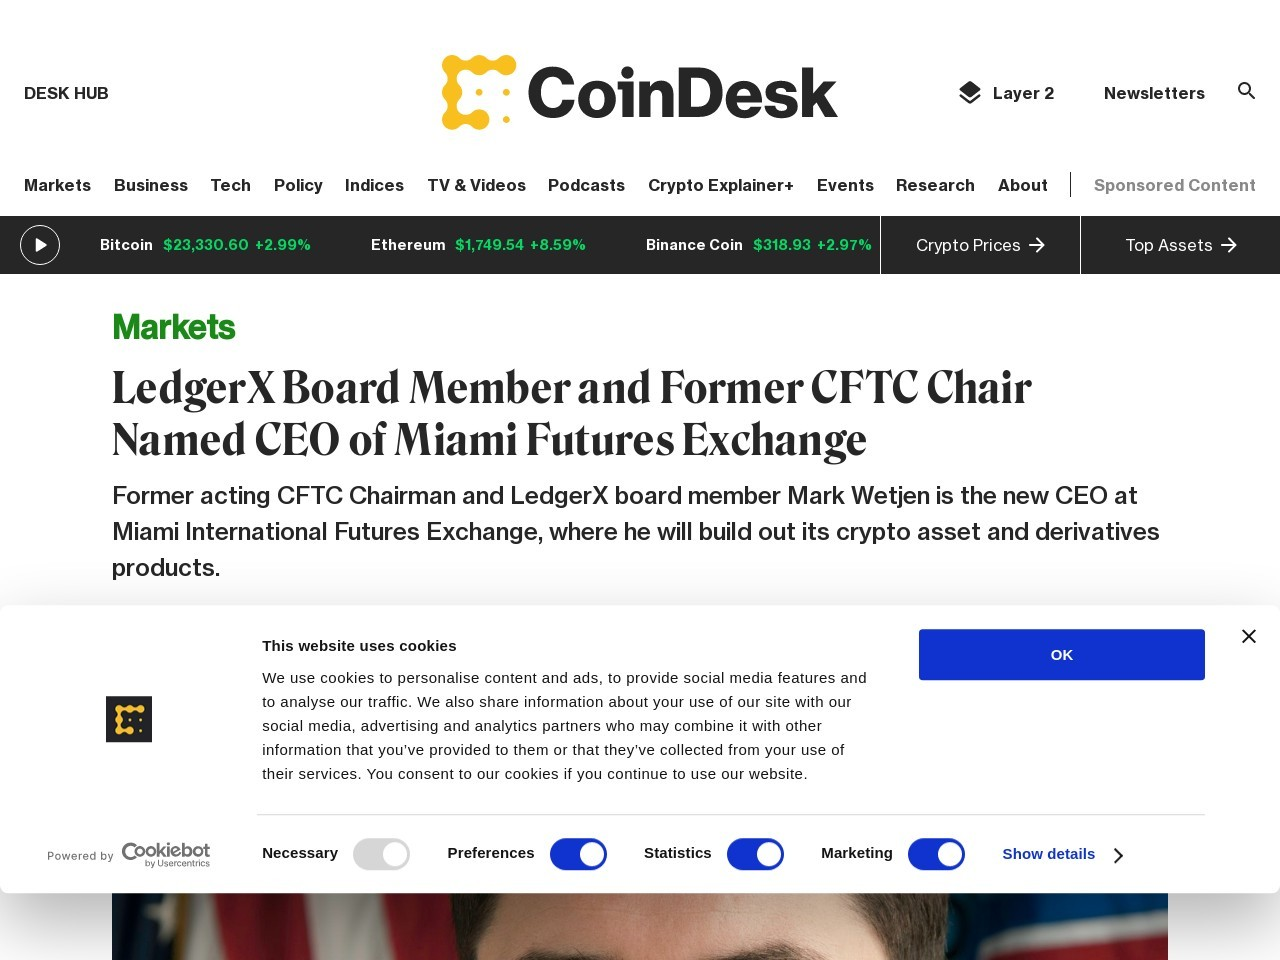 LedgerX Board Member and Former CFTC Chair Named CEO of Miami Futures Exchange